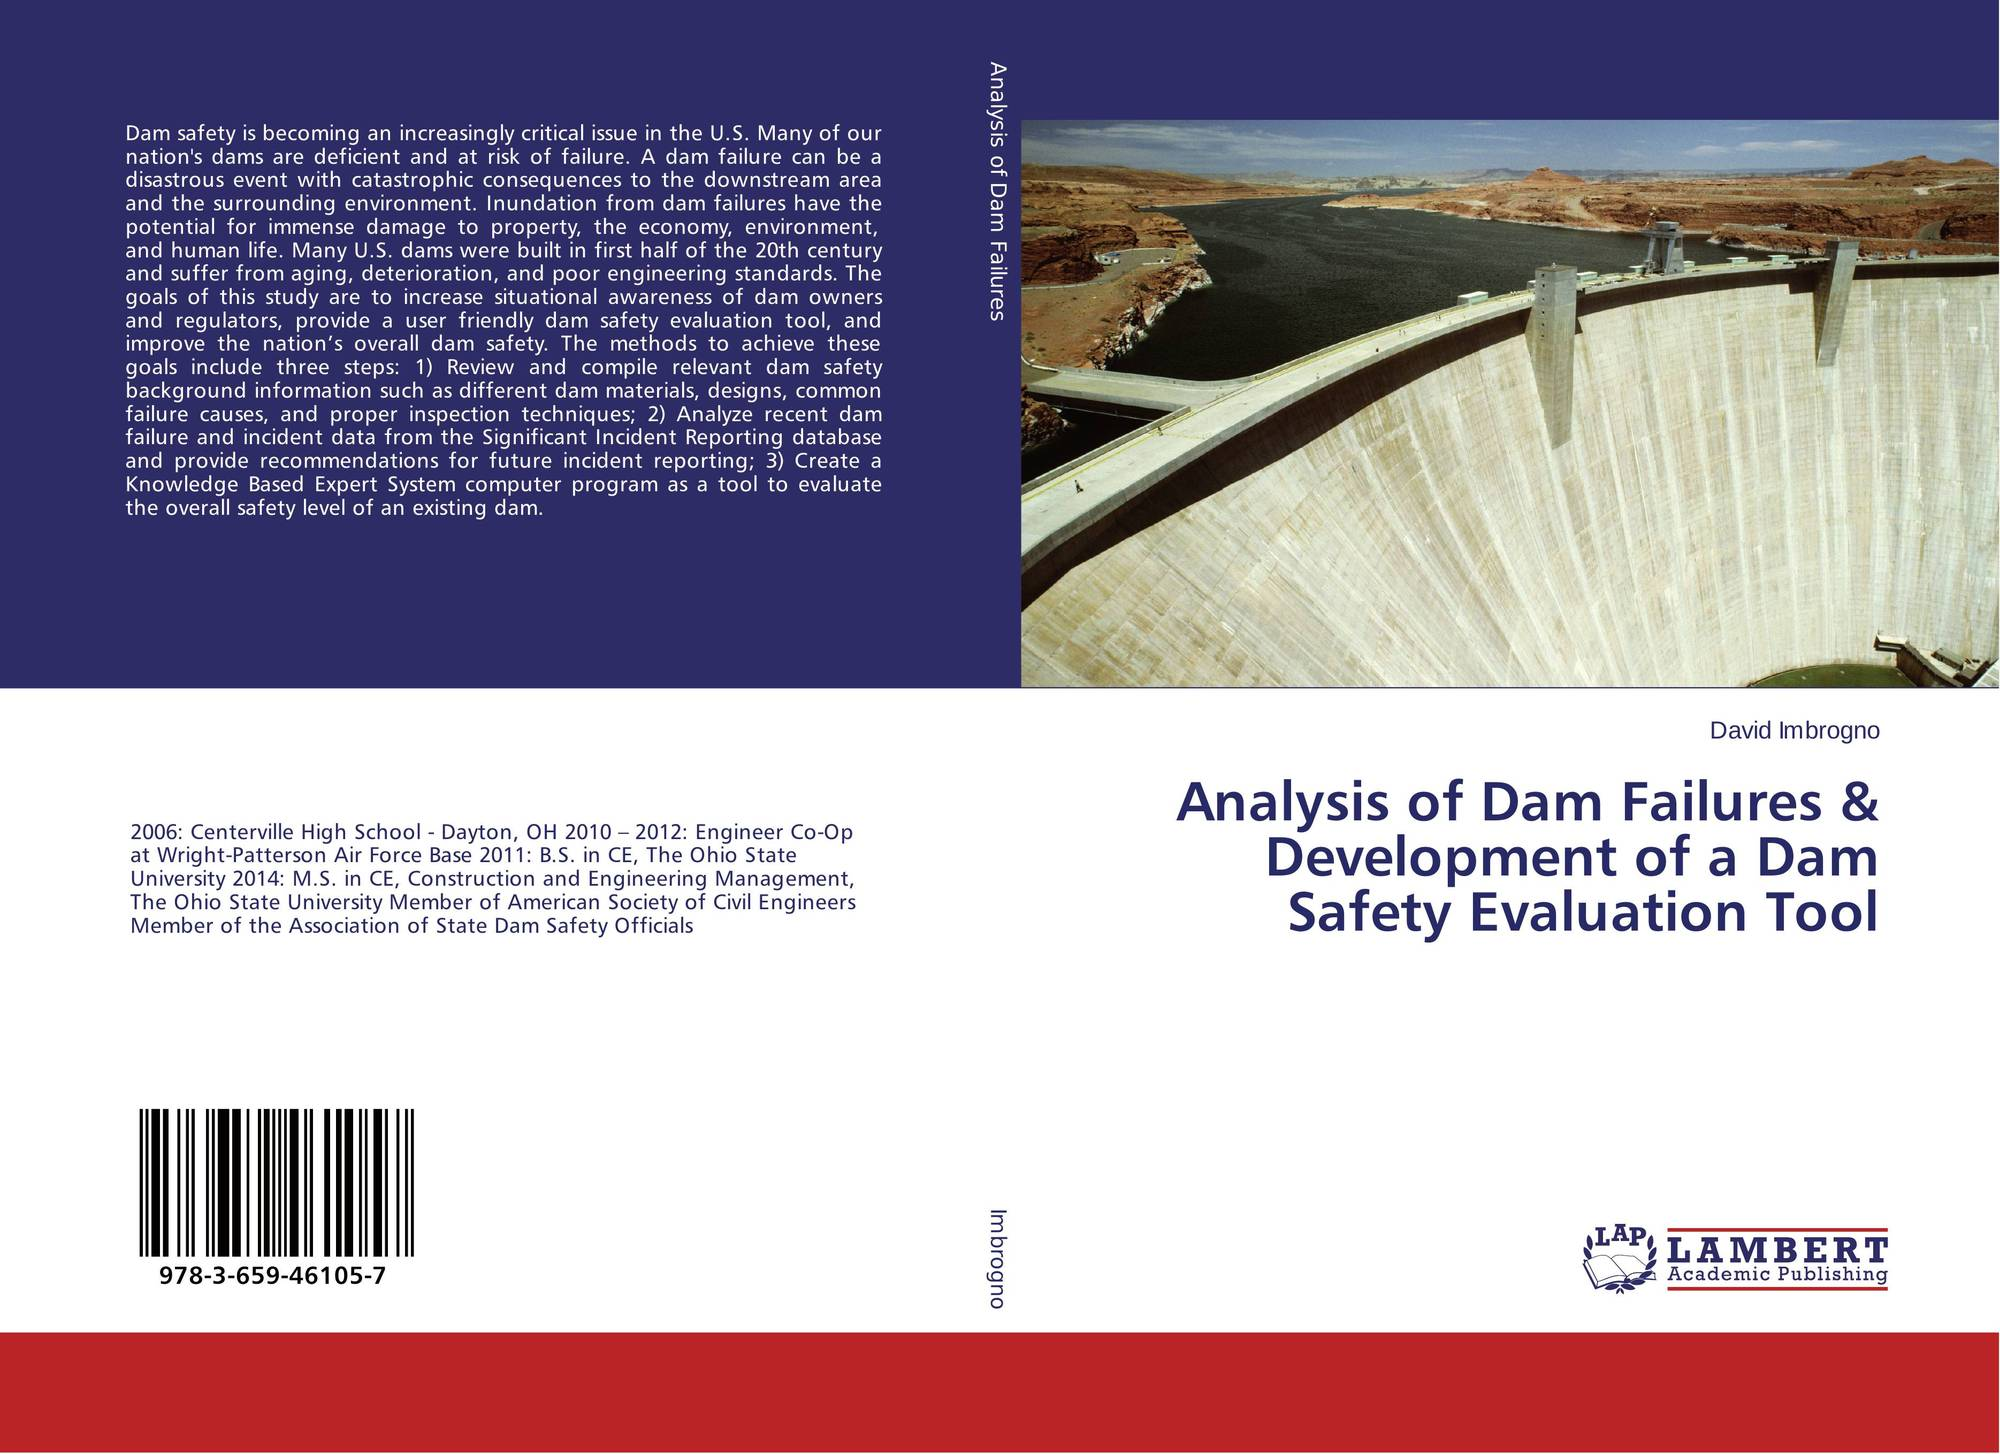 """an analysis of the dam Strength of materials for embankment dams practice"""" for determining fill strength parameters for earthfill embankment dams and the static analysis of embankment."""